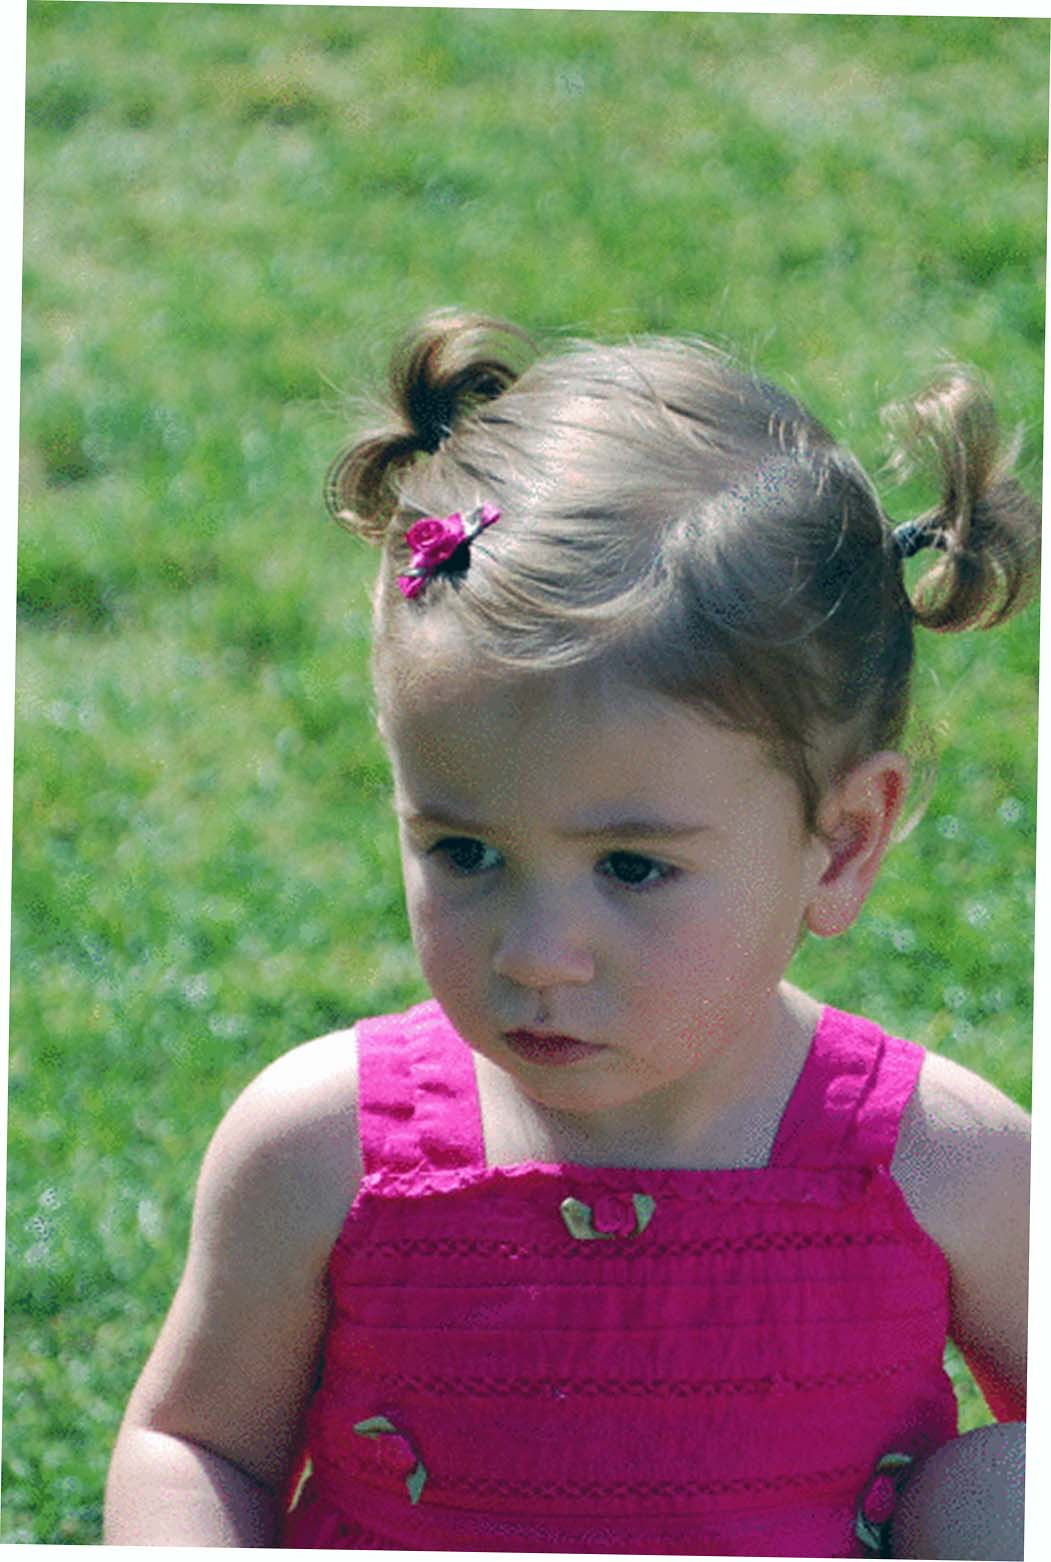 Best ideas about Hairstyles For Baby Girls . Save or Pin 25 Baby Girl Hairstyles BEST and Re mended 2017 Ellecrafts Now.